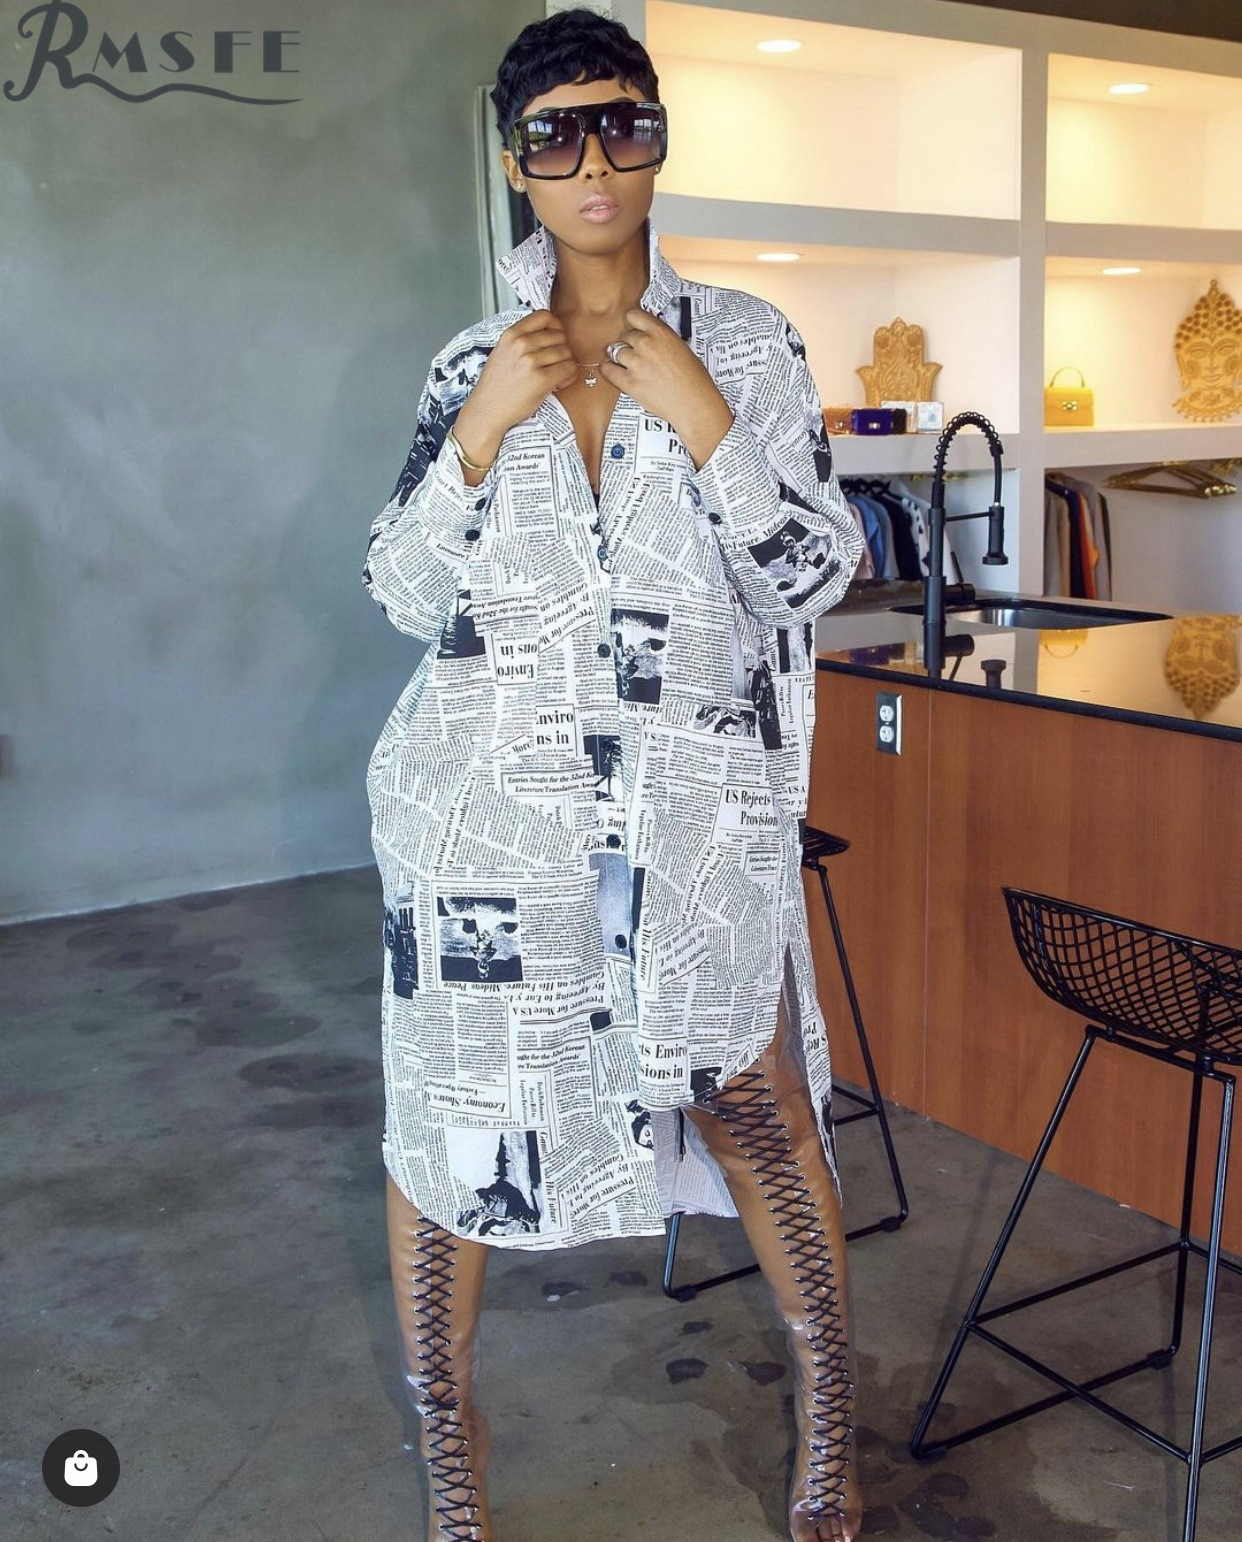 Coolhappy 2021 Plus SizeSpring Casual Newspaper Printed White Loose Shirt Blouse Women Clothes Long Sleeve Vintage Party Dress Dresses  3